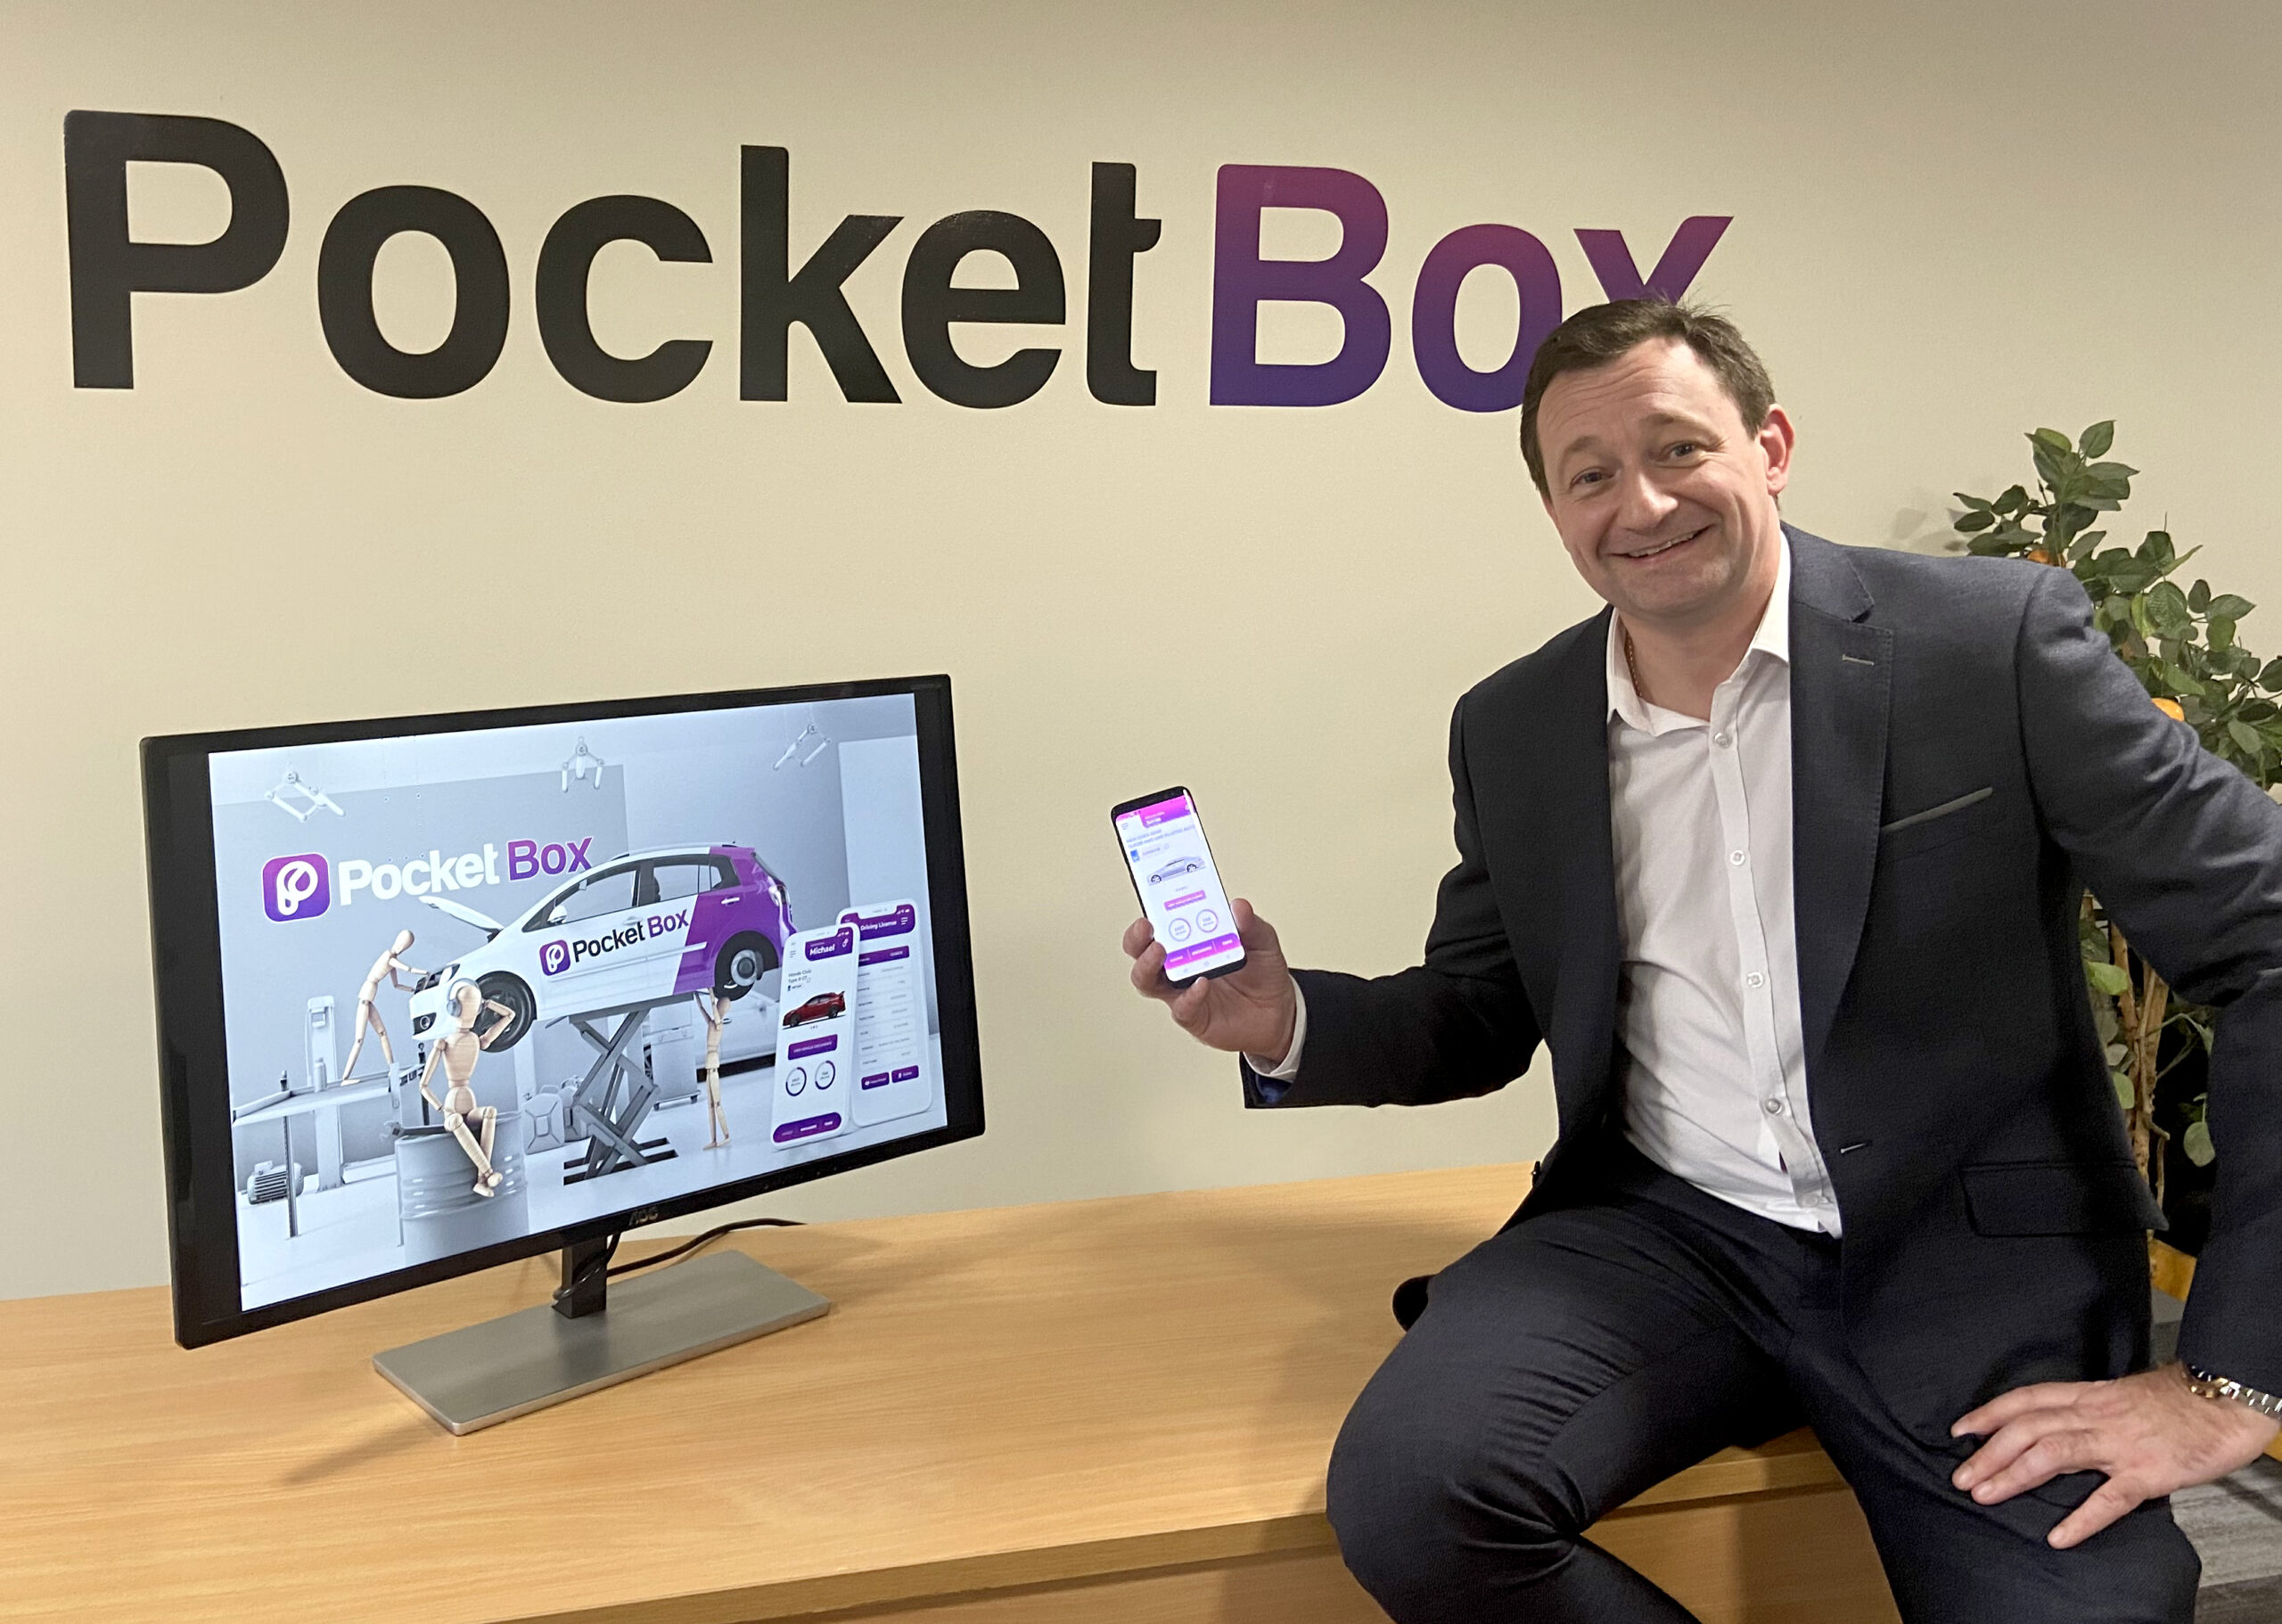 Newry, Northern Ireland tech entrepreneur JimFinnegan has launched Pocket Box, which is now available to download from theapp store